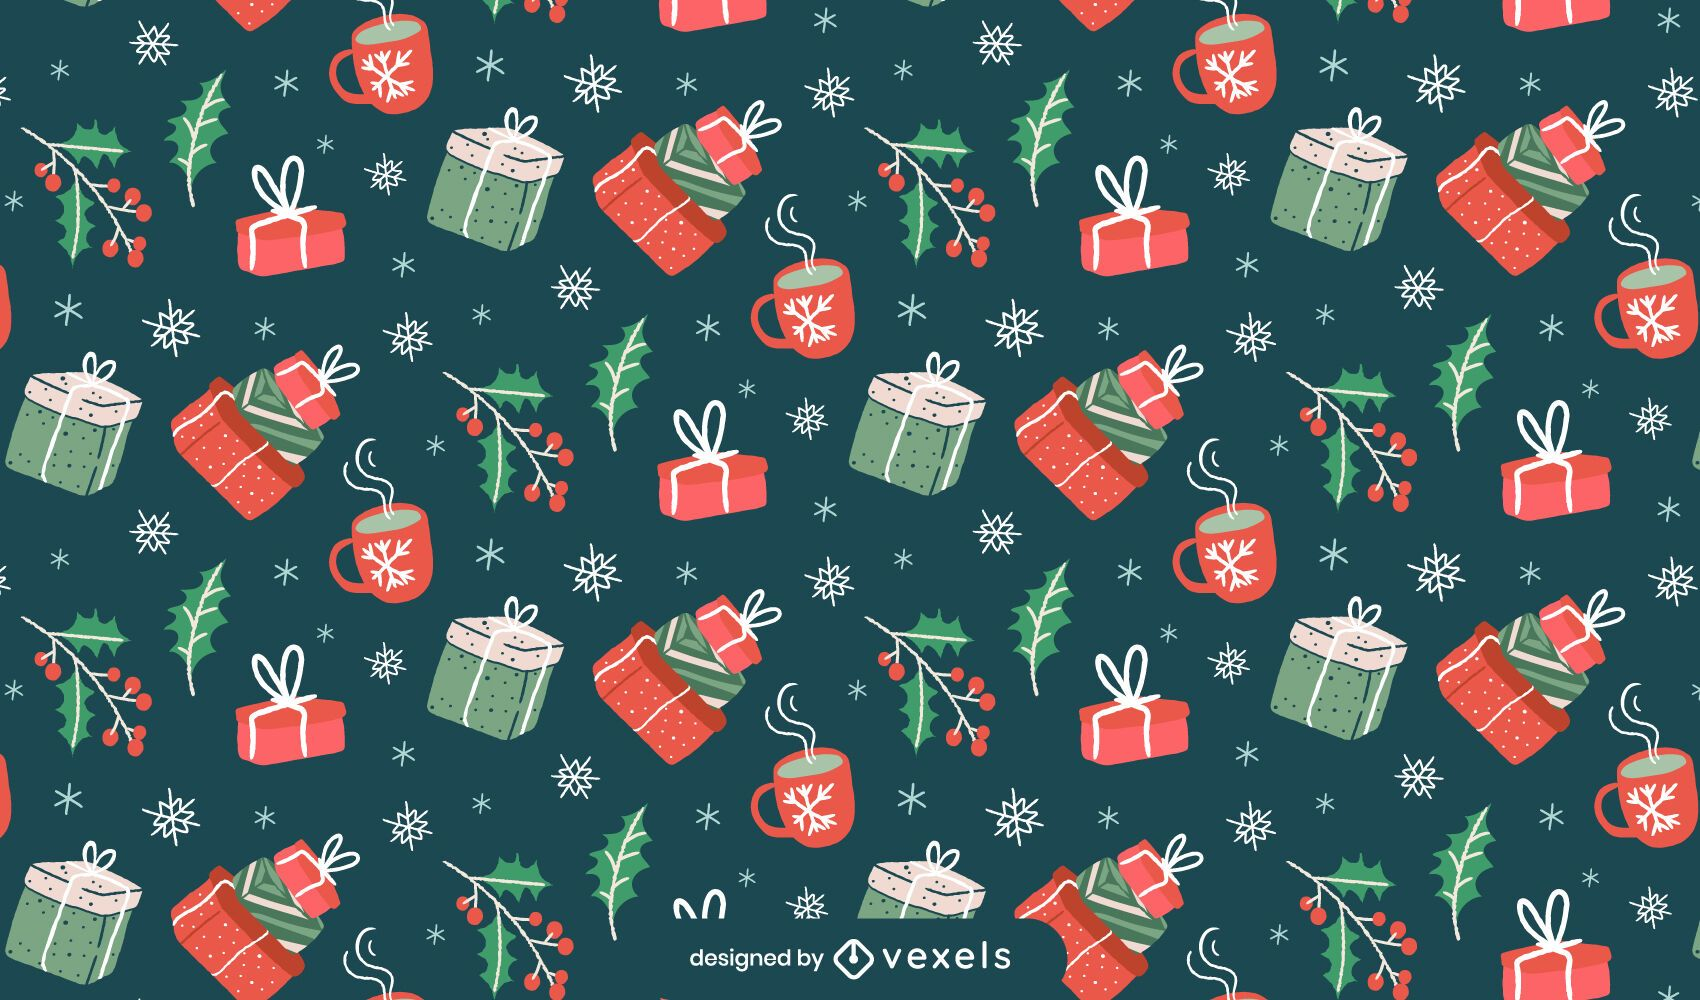 Gifts christmas pattern design